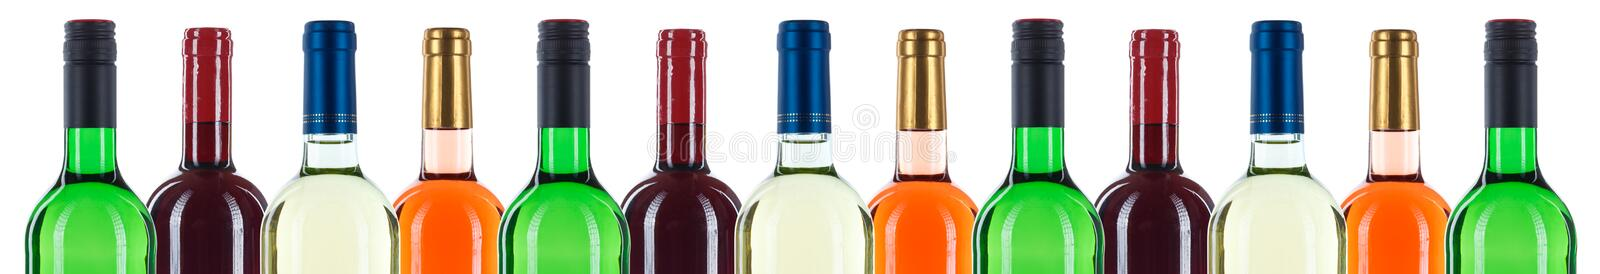 Collection of wine bottles bottleneck in a row red banner isolated on white royalty free stock photos